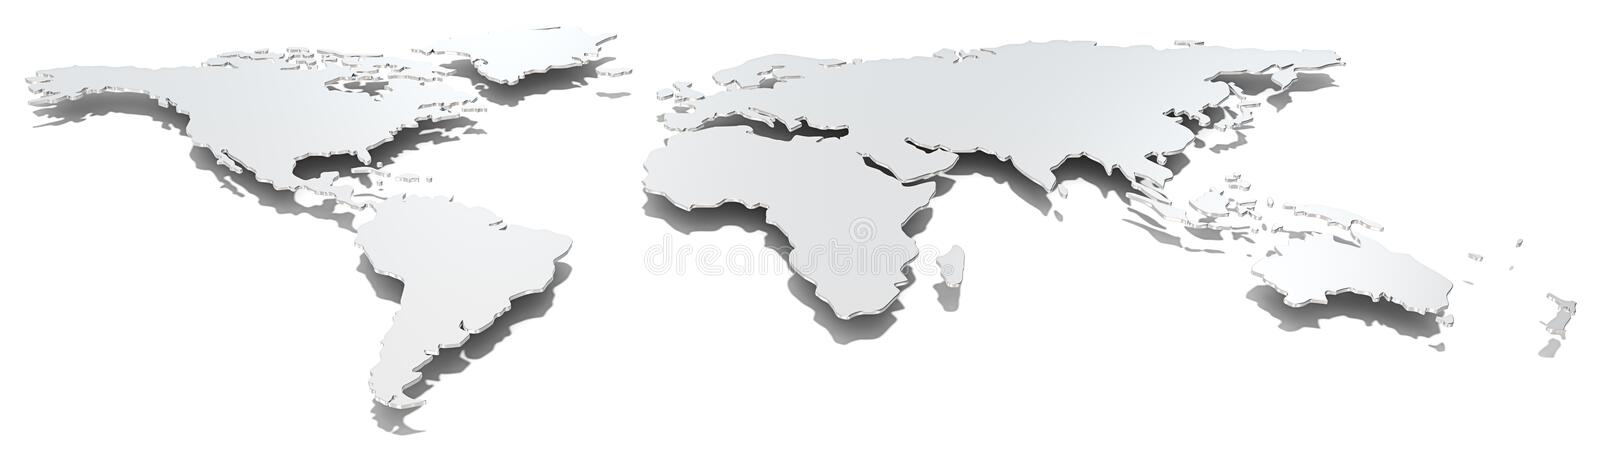 Wide image world map. Front view of thin steel world map. Hard shadow. Metal vector illustration